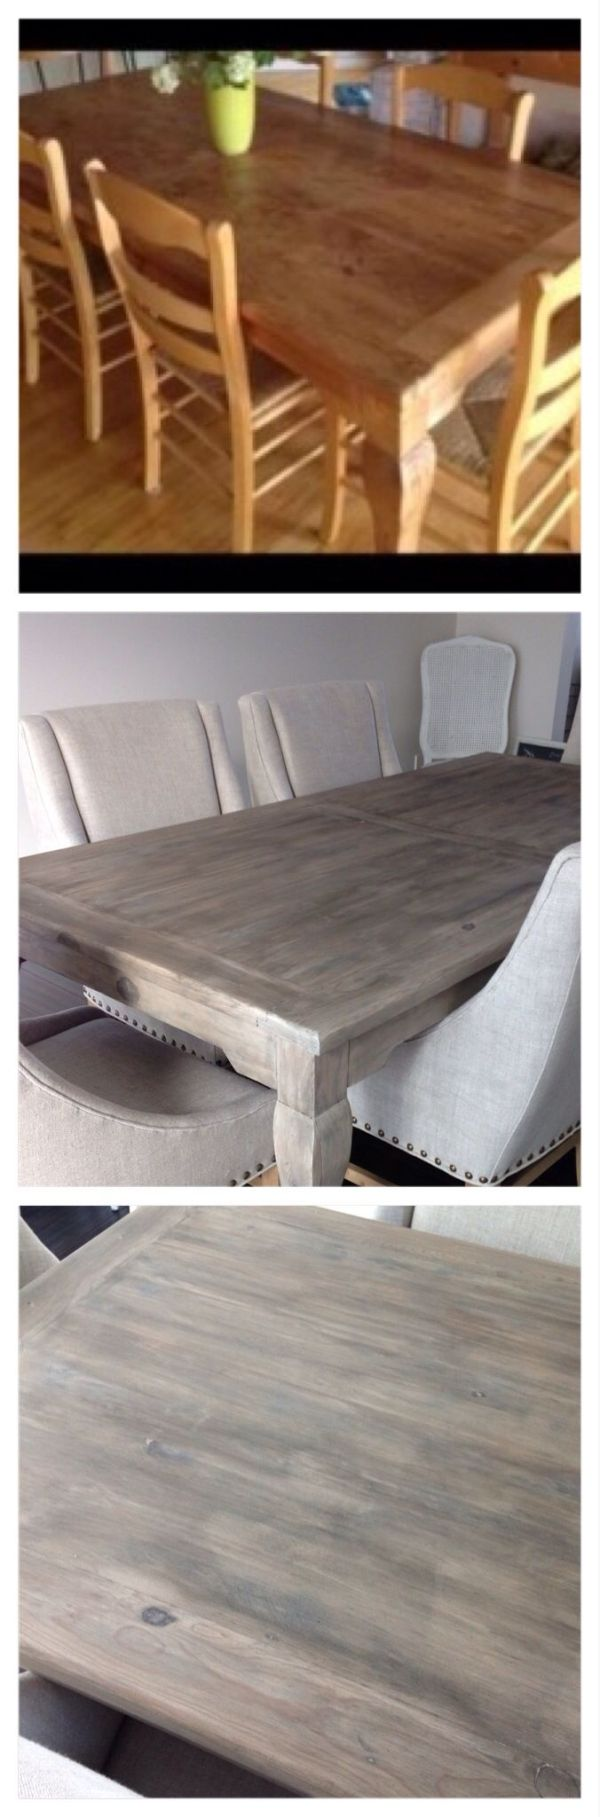 Diy Restoration Hardware Finish Craigslist Table Stripped Sanded Bleached I Used A Deck Bleach Liming Wax Glaze Two Coats Clear